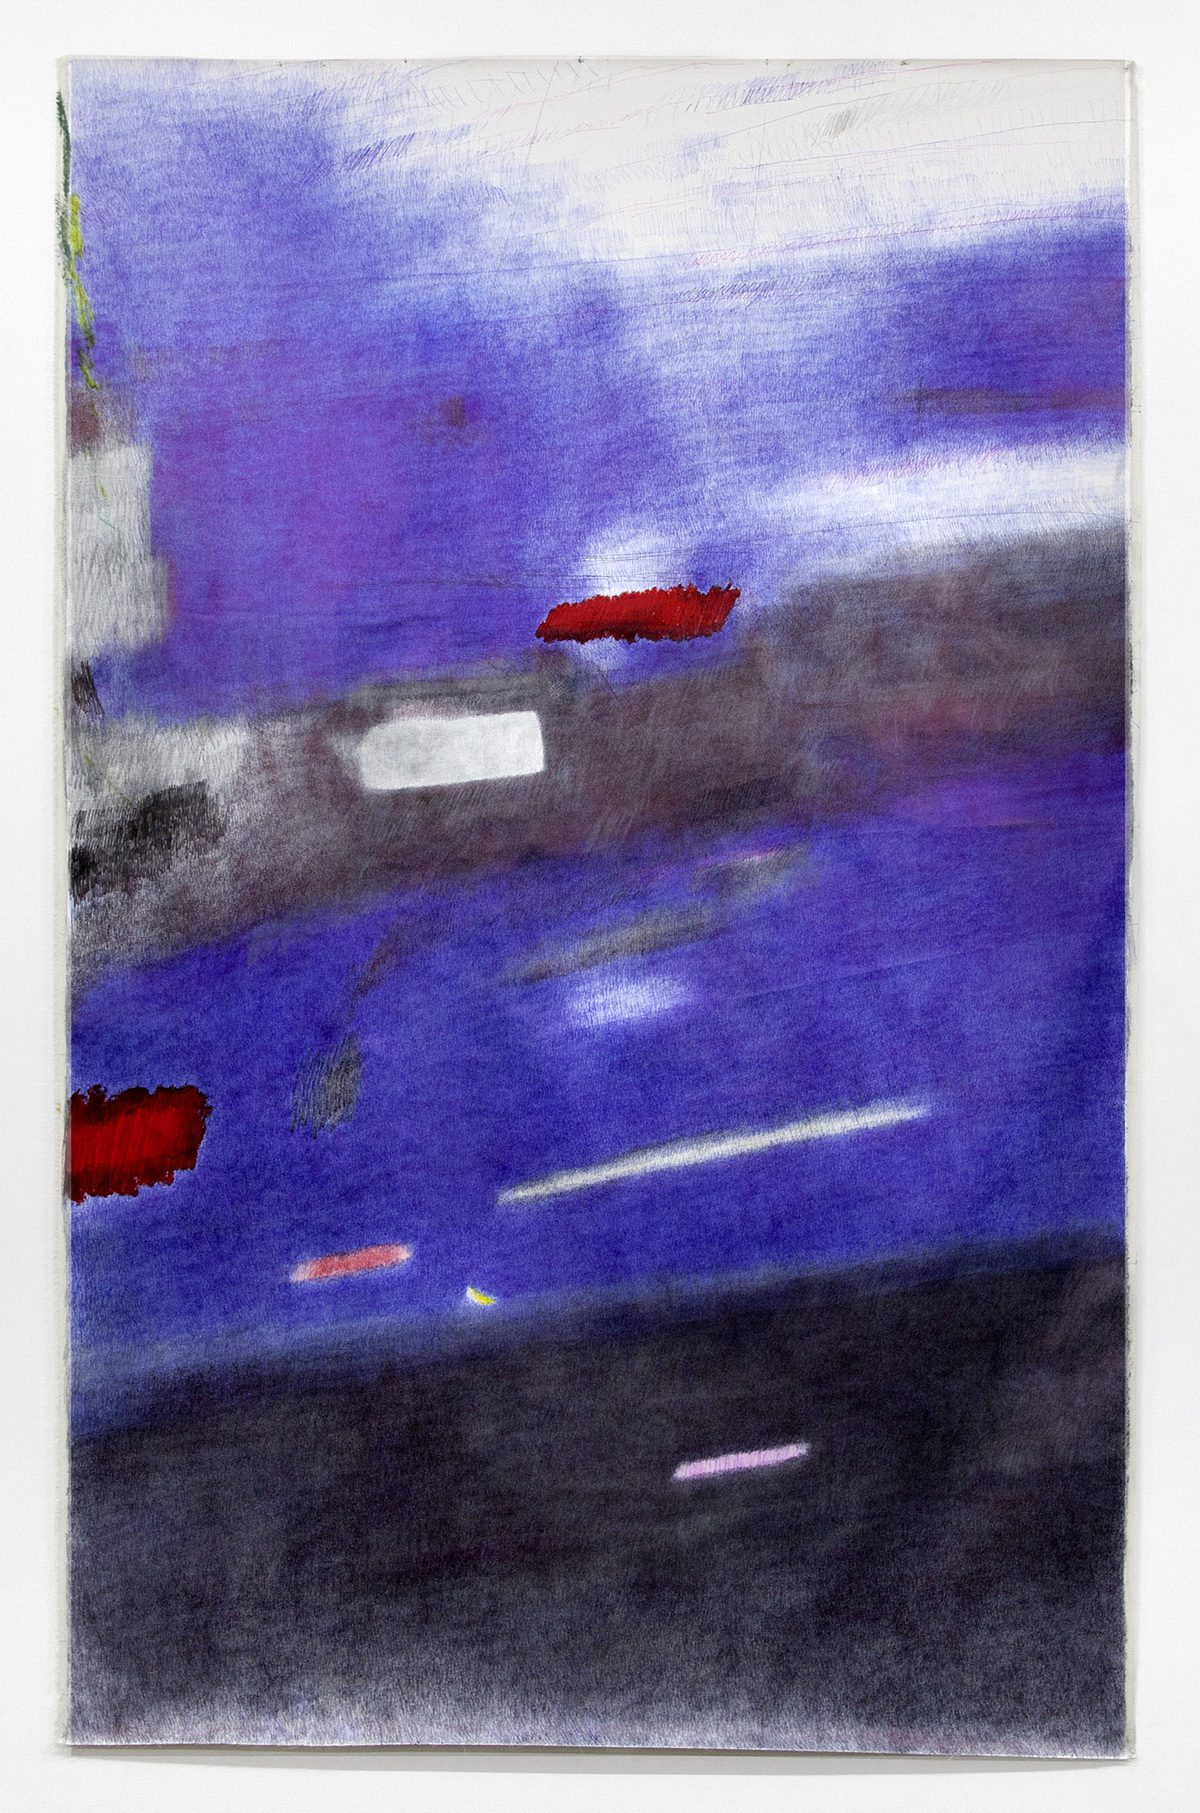 Untitled (Senza Titolo), 2015, Ballpoint pen, oil, and marker on canvas, 98 x 63 inches (248.92 x 160.02 cm)